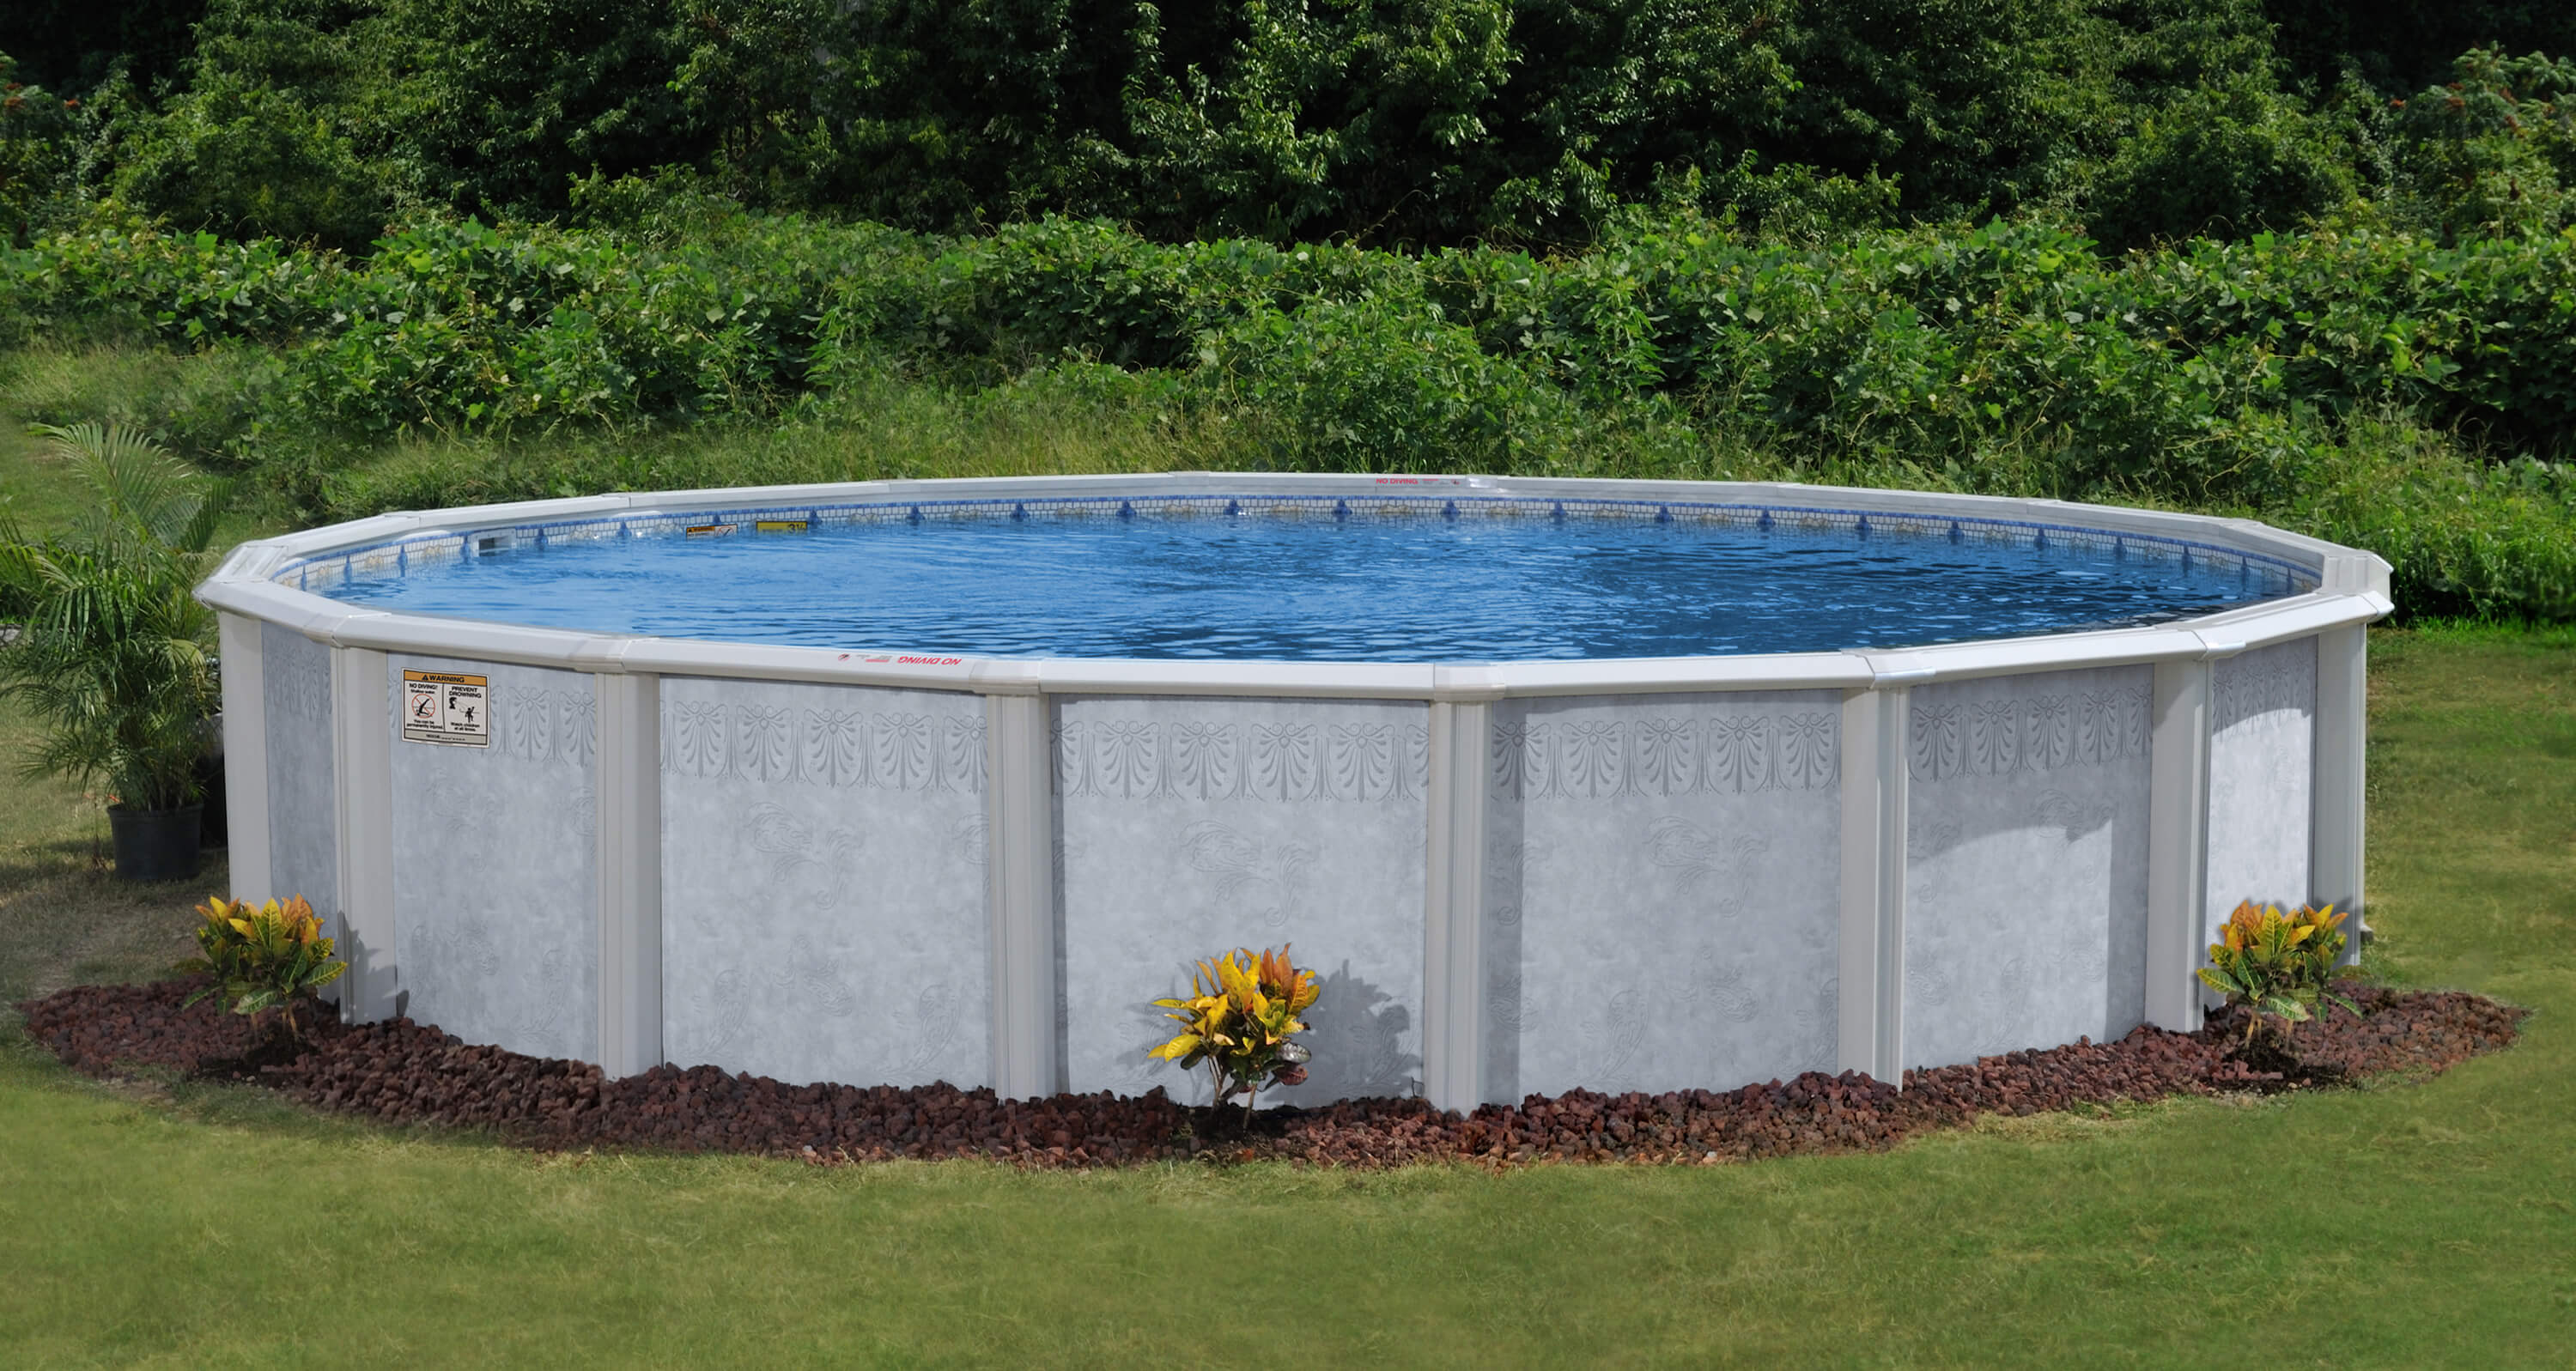 Swimming Pool Discounters Locations | swimming pool discounters